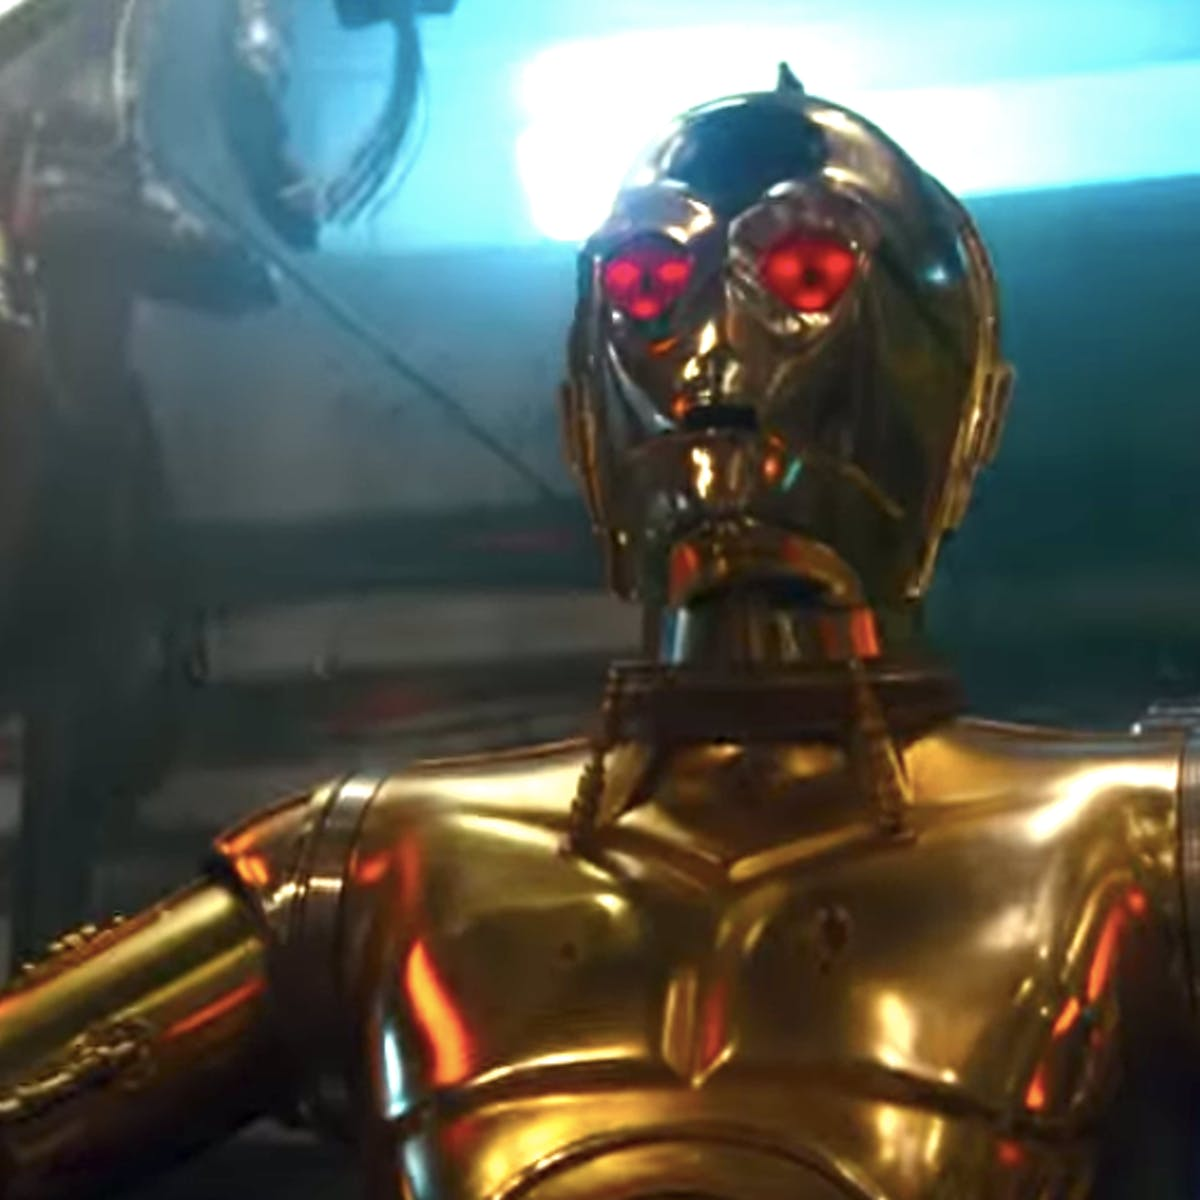 'Star Wars 9' Theory May Reveal C-3PO's True Allegiance to the Dark Side